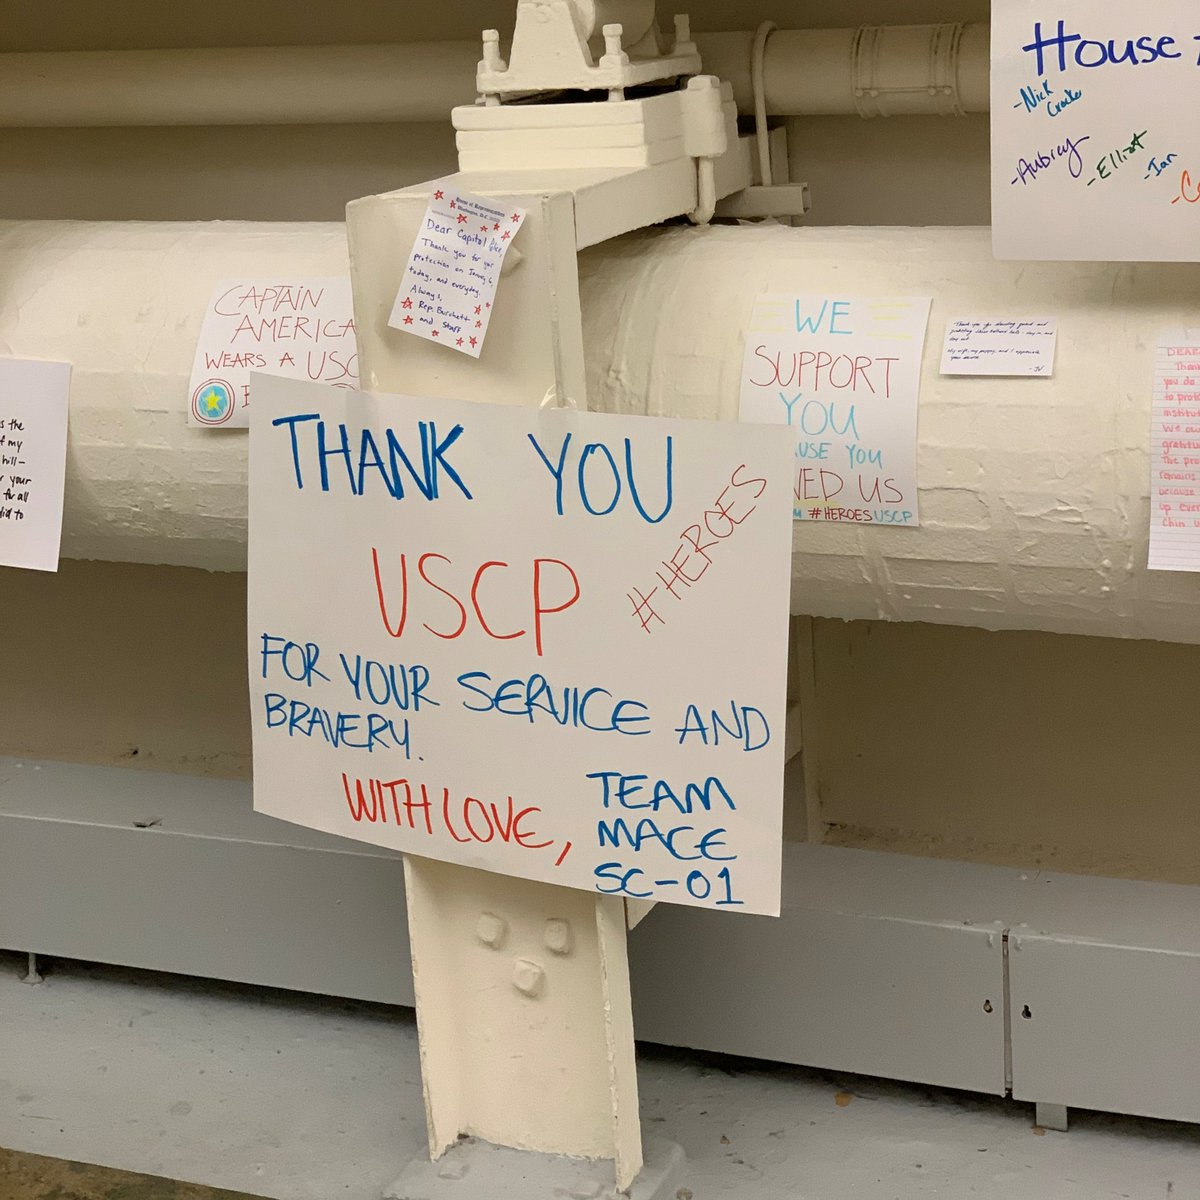 My staff, our families, and I can't thank the officers of the USCP enough for their service. They risk everything and make the ultimate sacrifice to protect Congress and our democracy. Thank you for keeping us safe. 💙💙